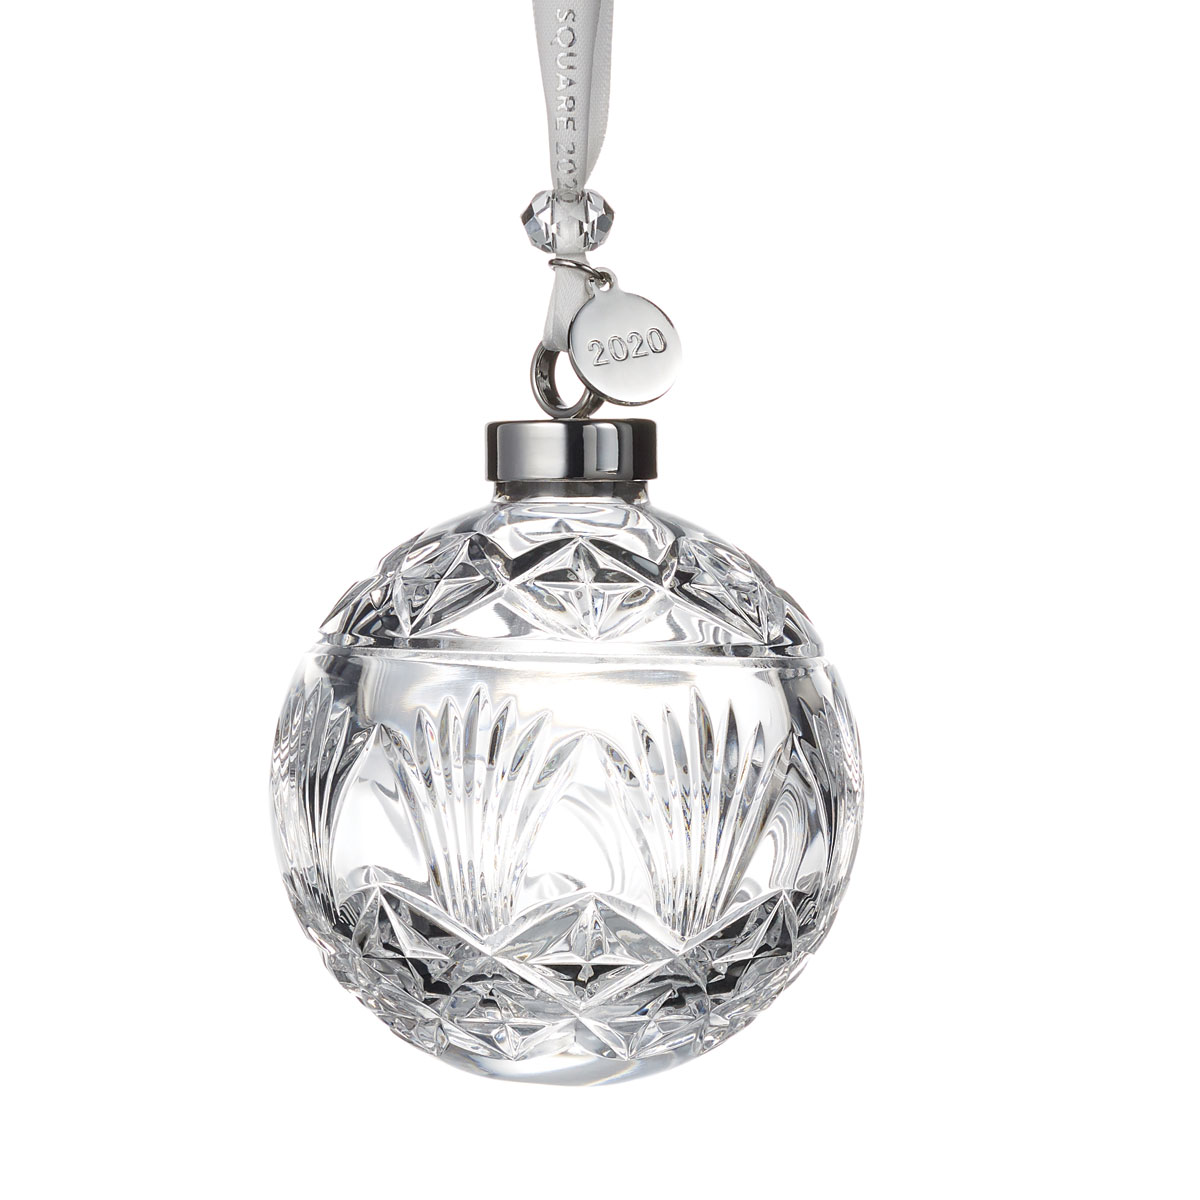 Waterford Crystal 2020 Times Square Ball Ornament